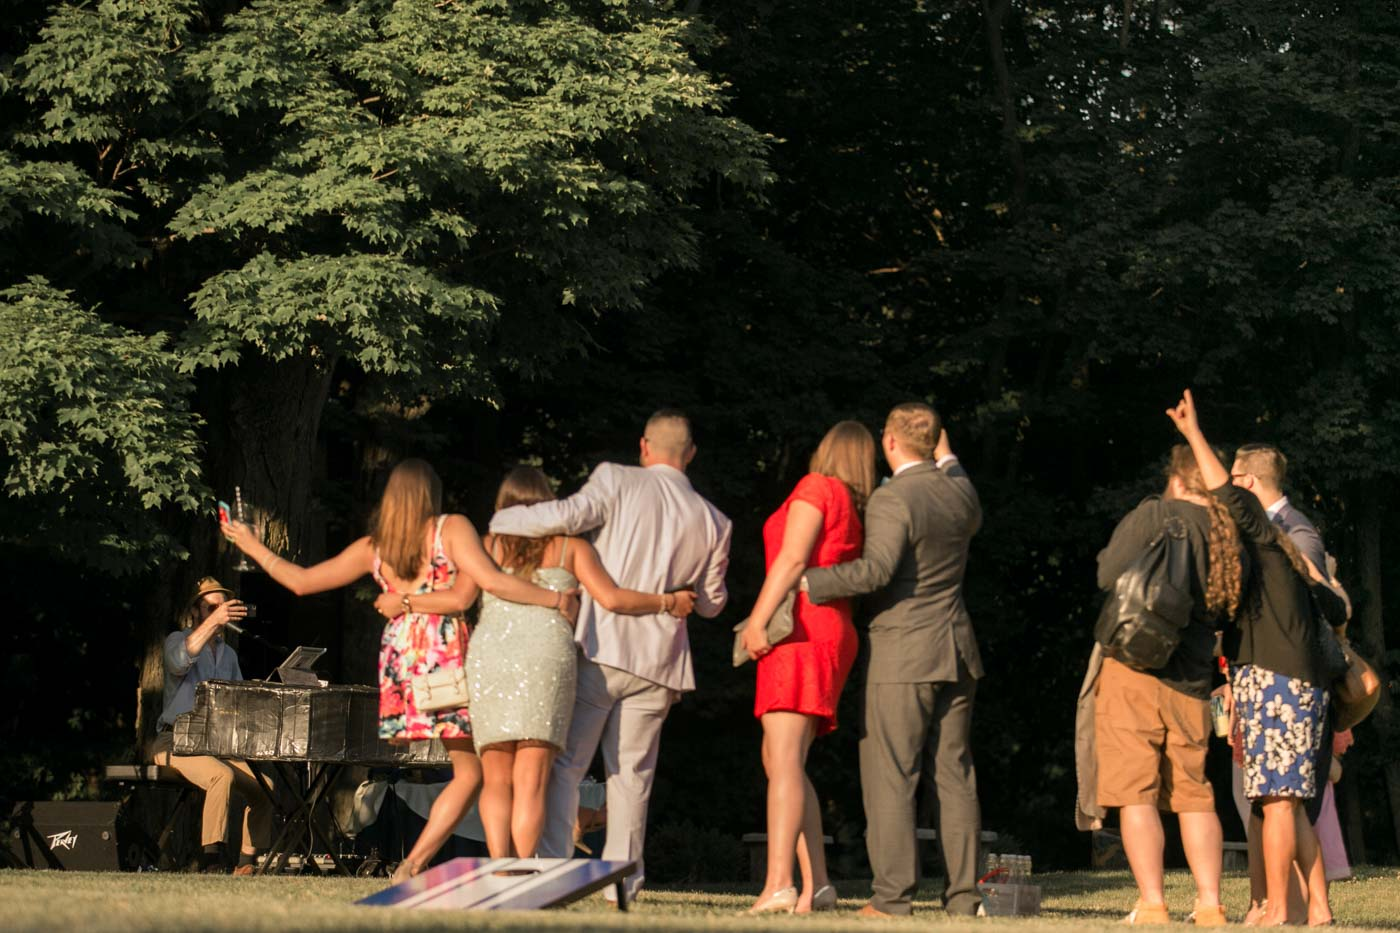 summer-wedding-guests-having-cocktails-on-lawn